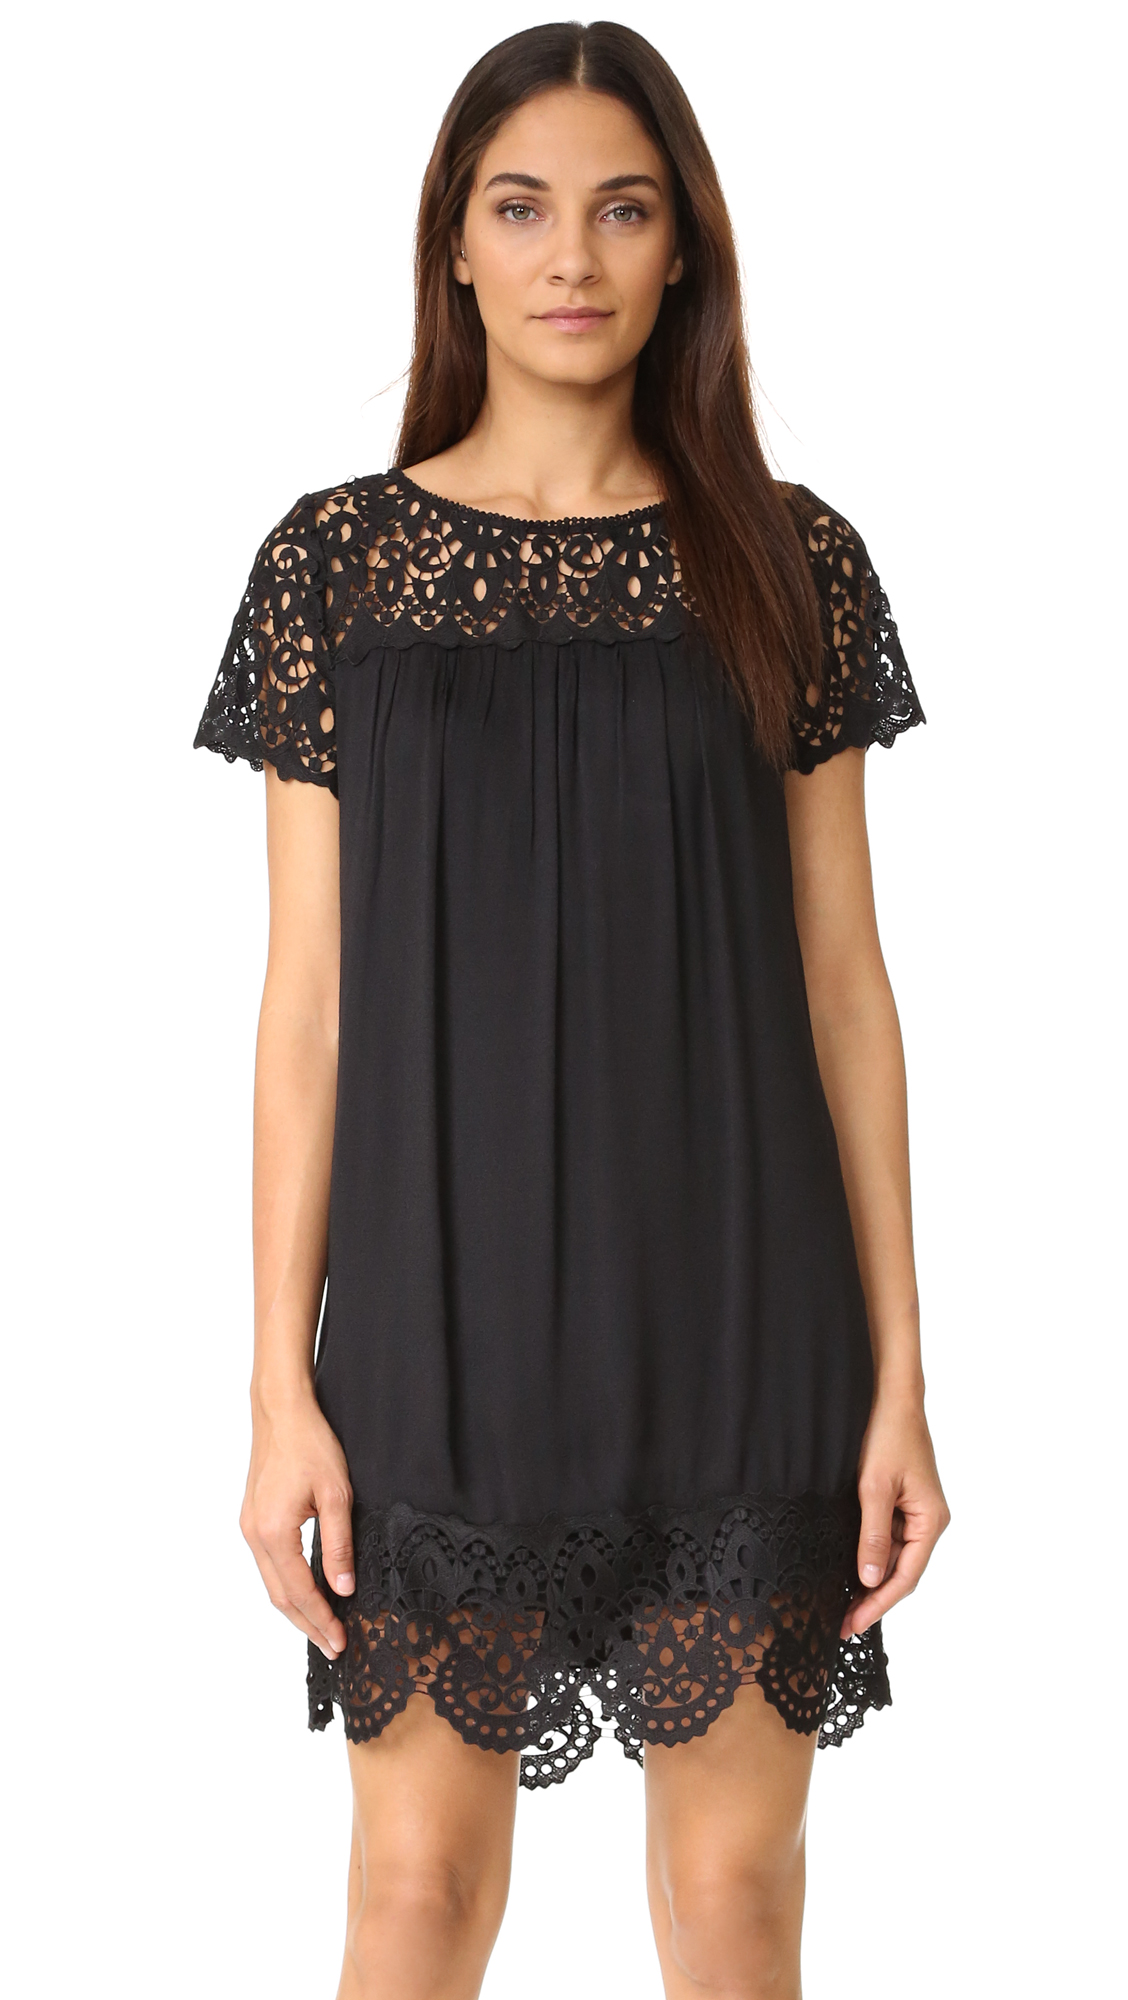 Joie Lea Dress - Caviar at Shopbop